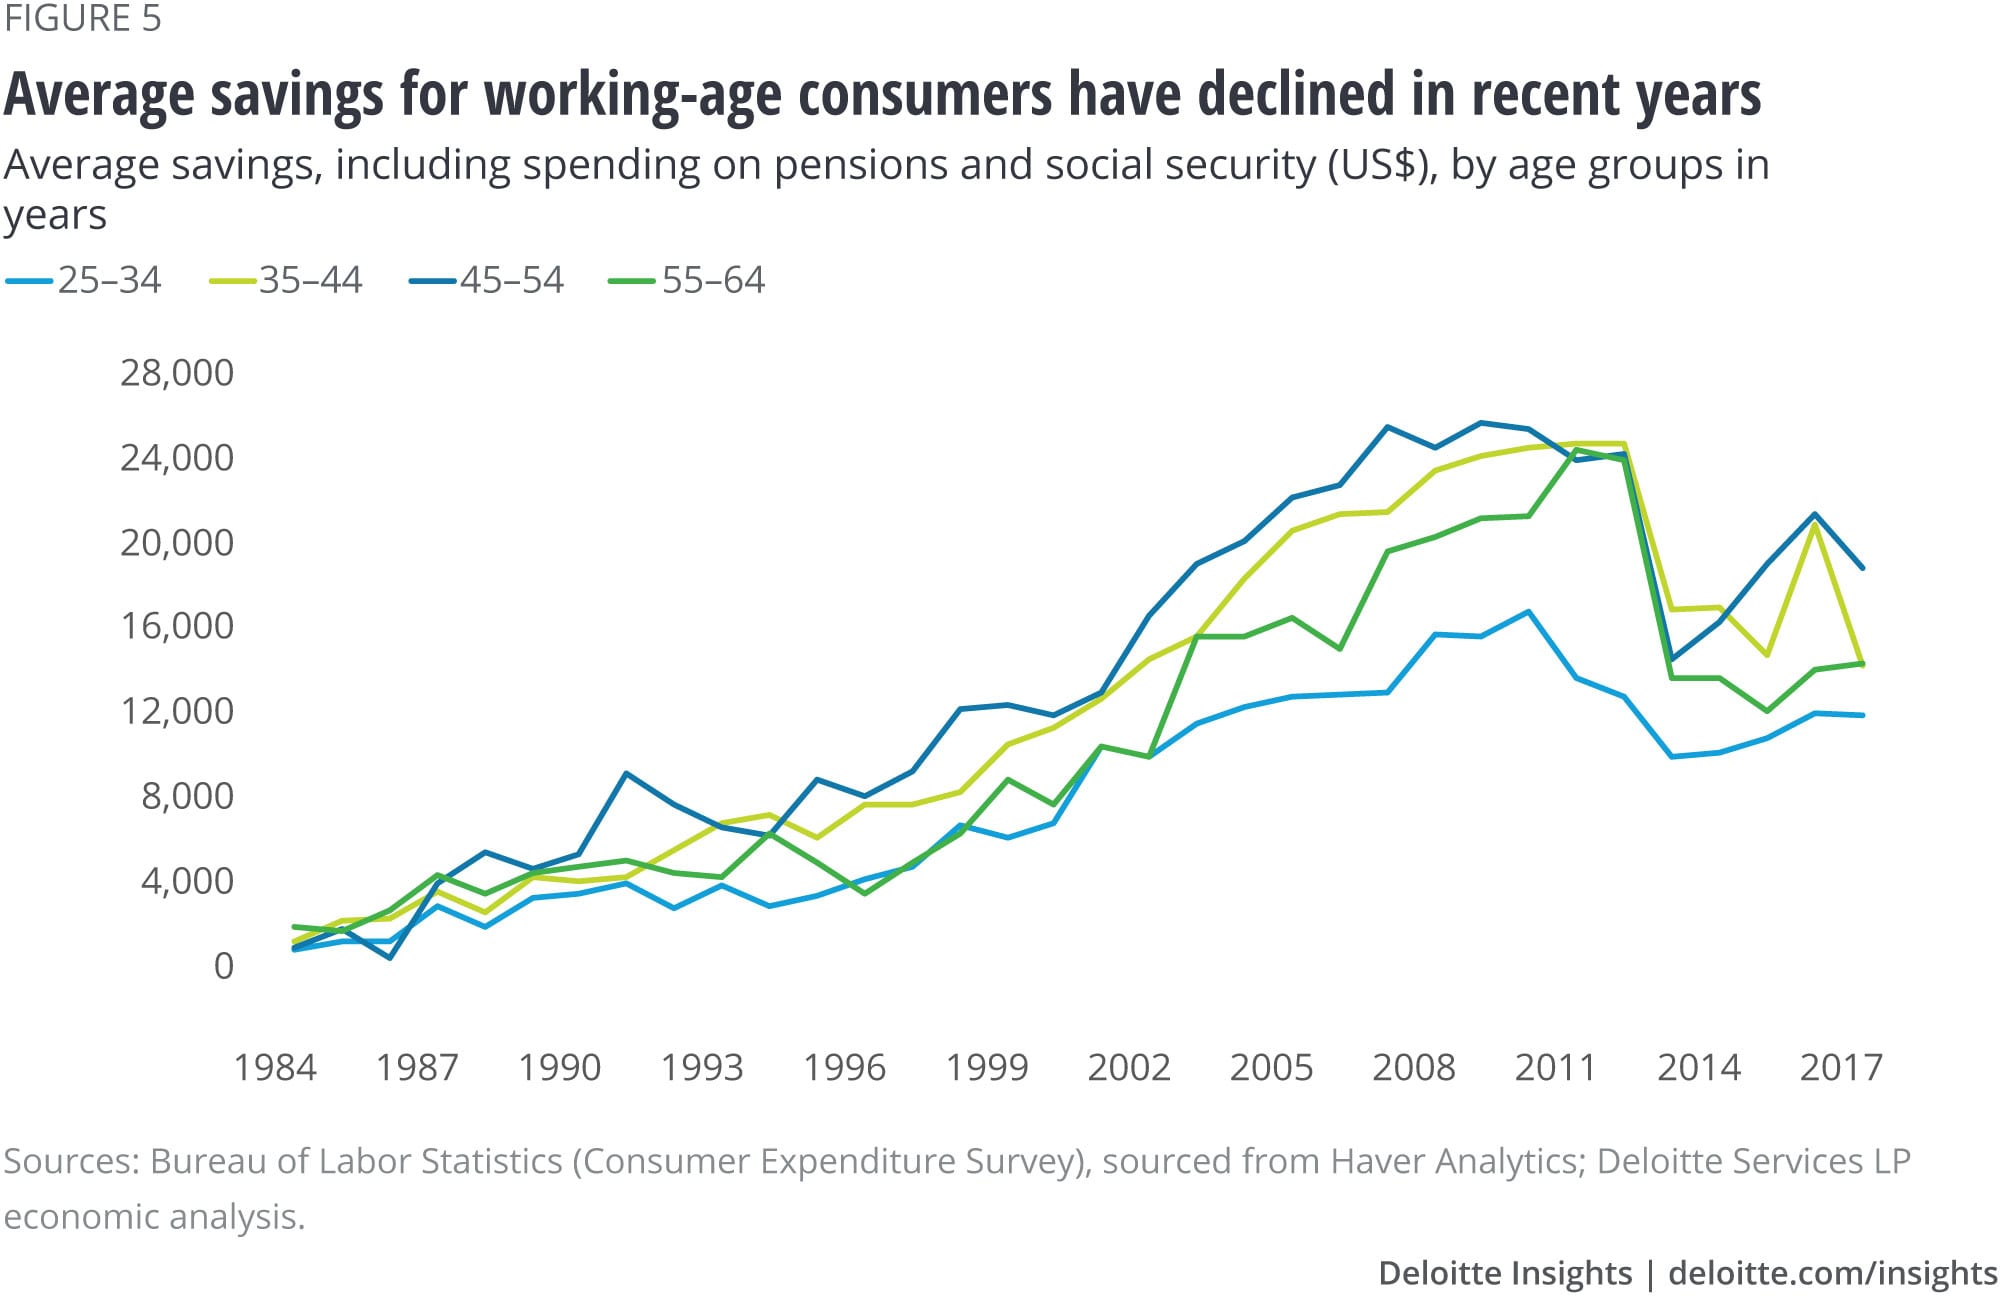 Average savings for working-age consumers have declined in recent years